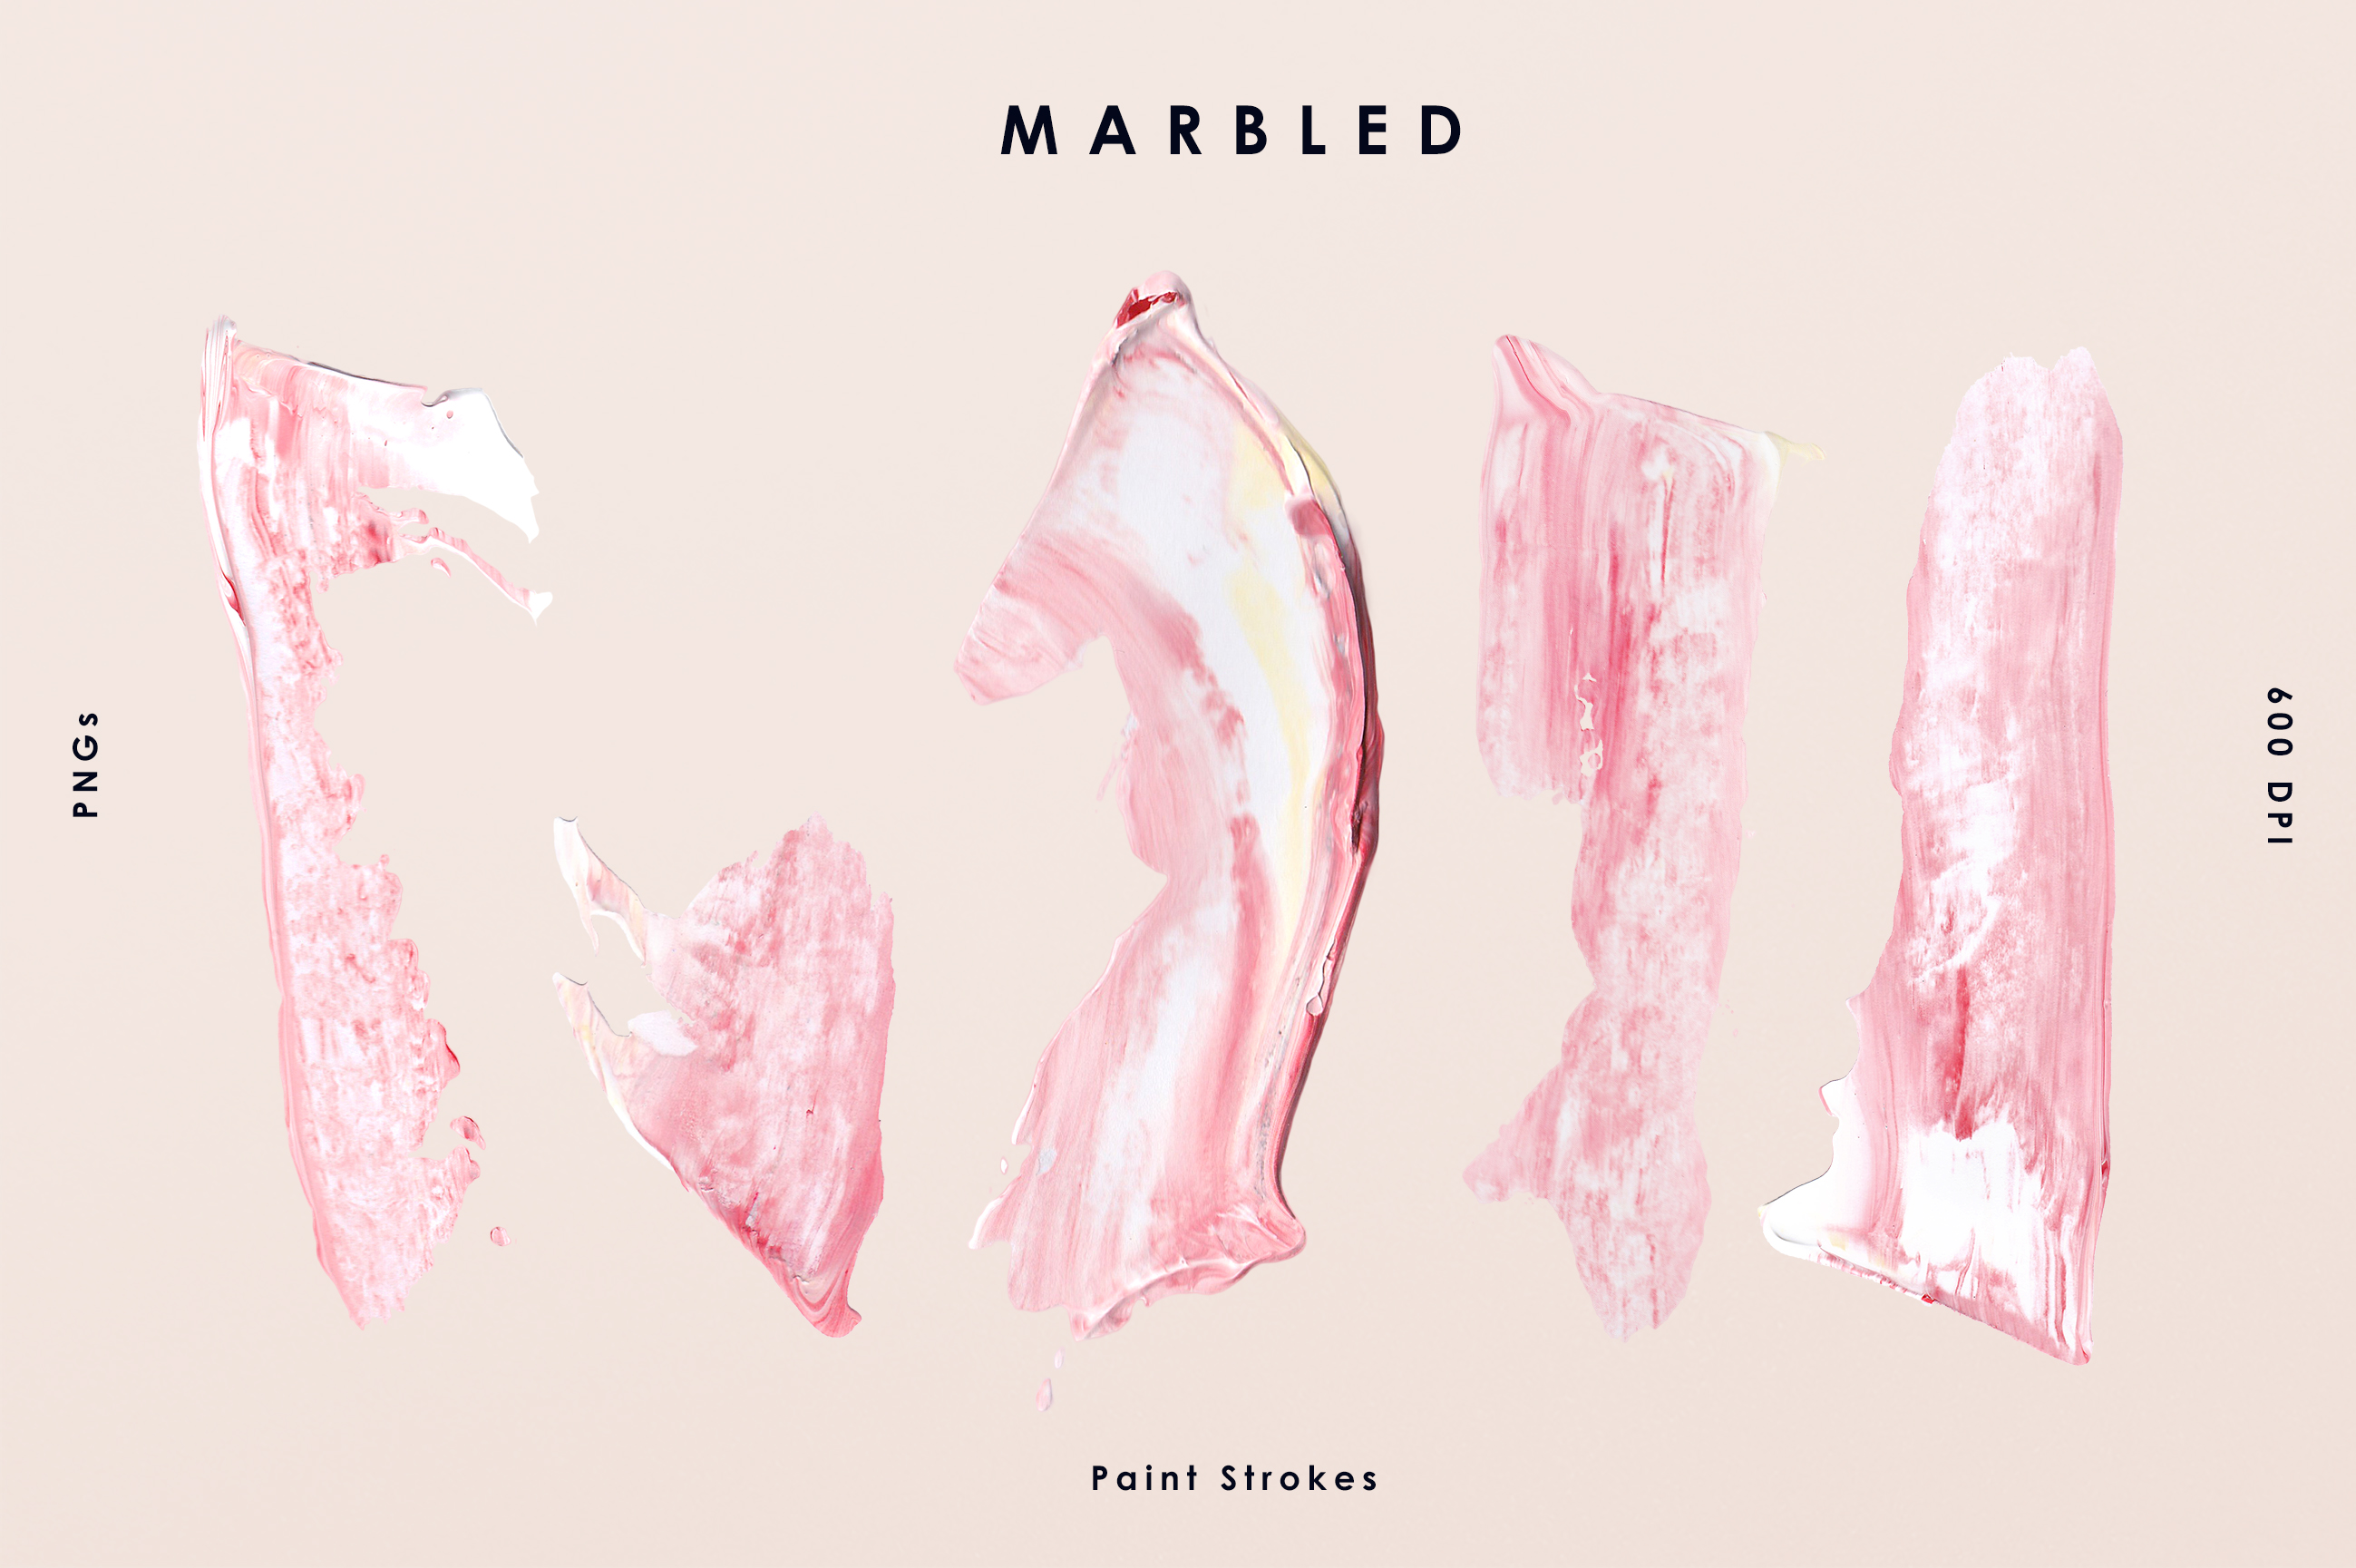 Pink Marbled Paint Strokes